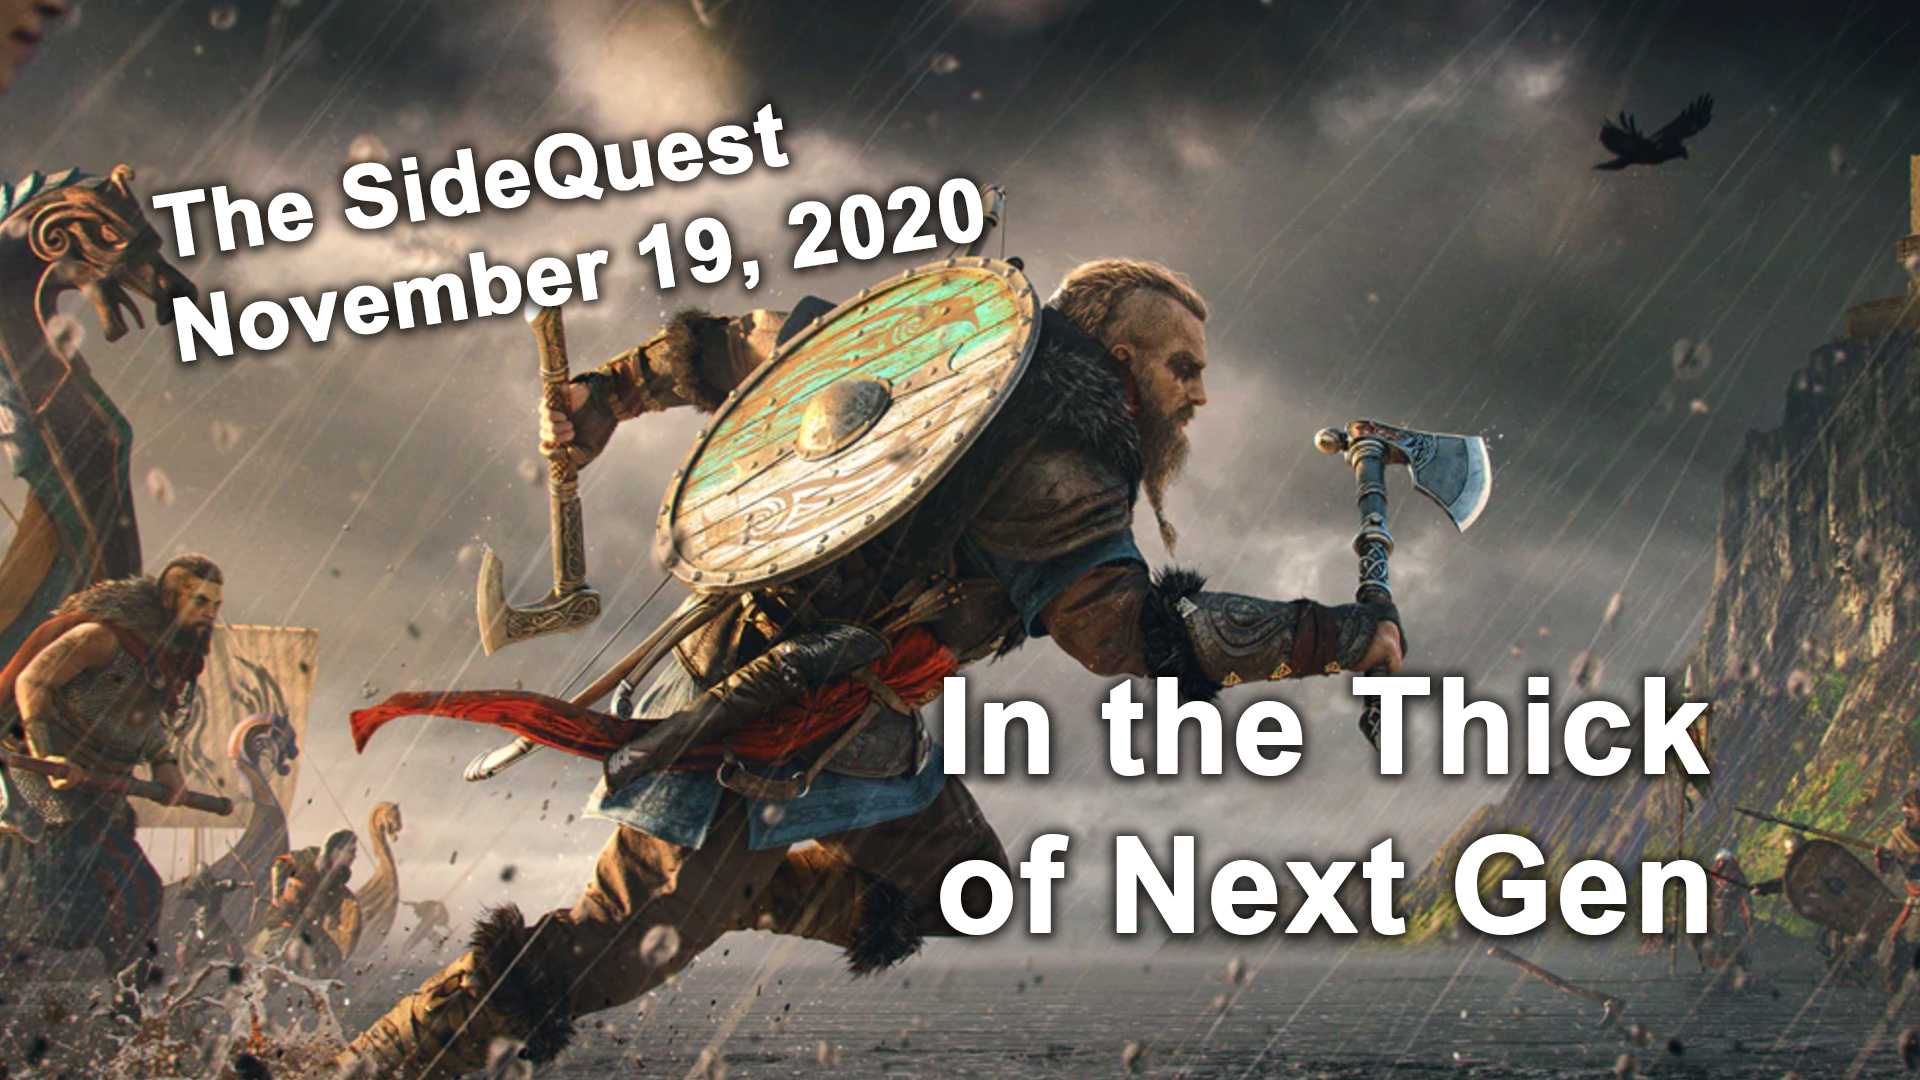 The SideQuest November 19, 2020: In the Thick of Next Gen